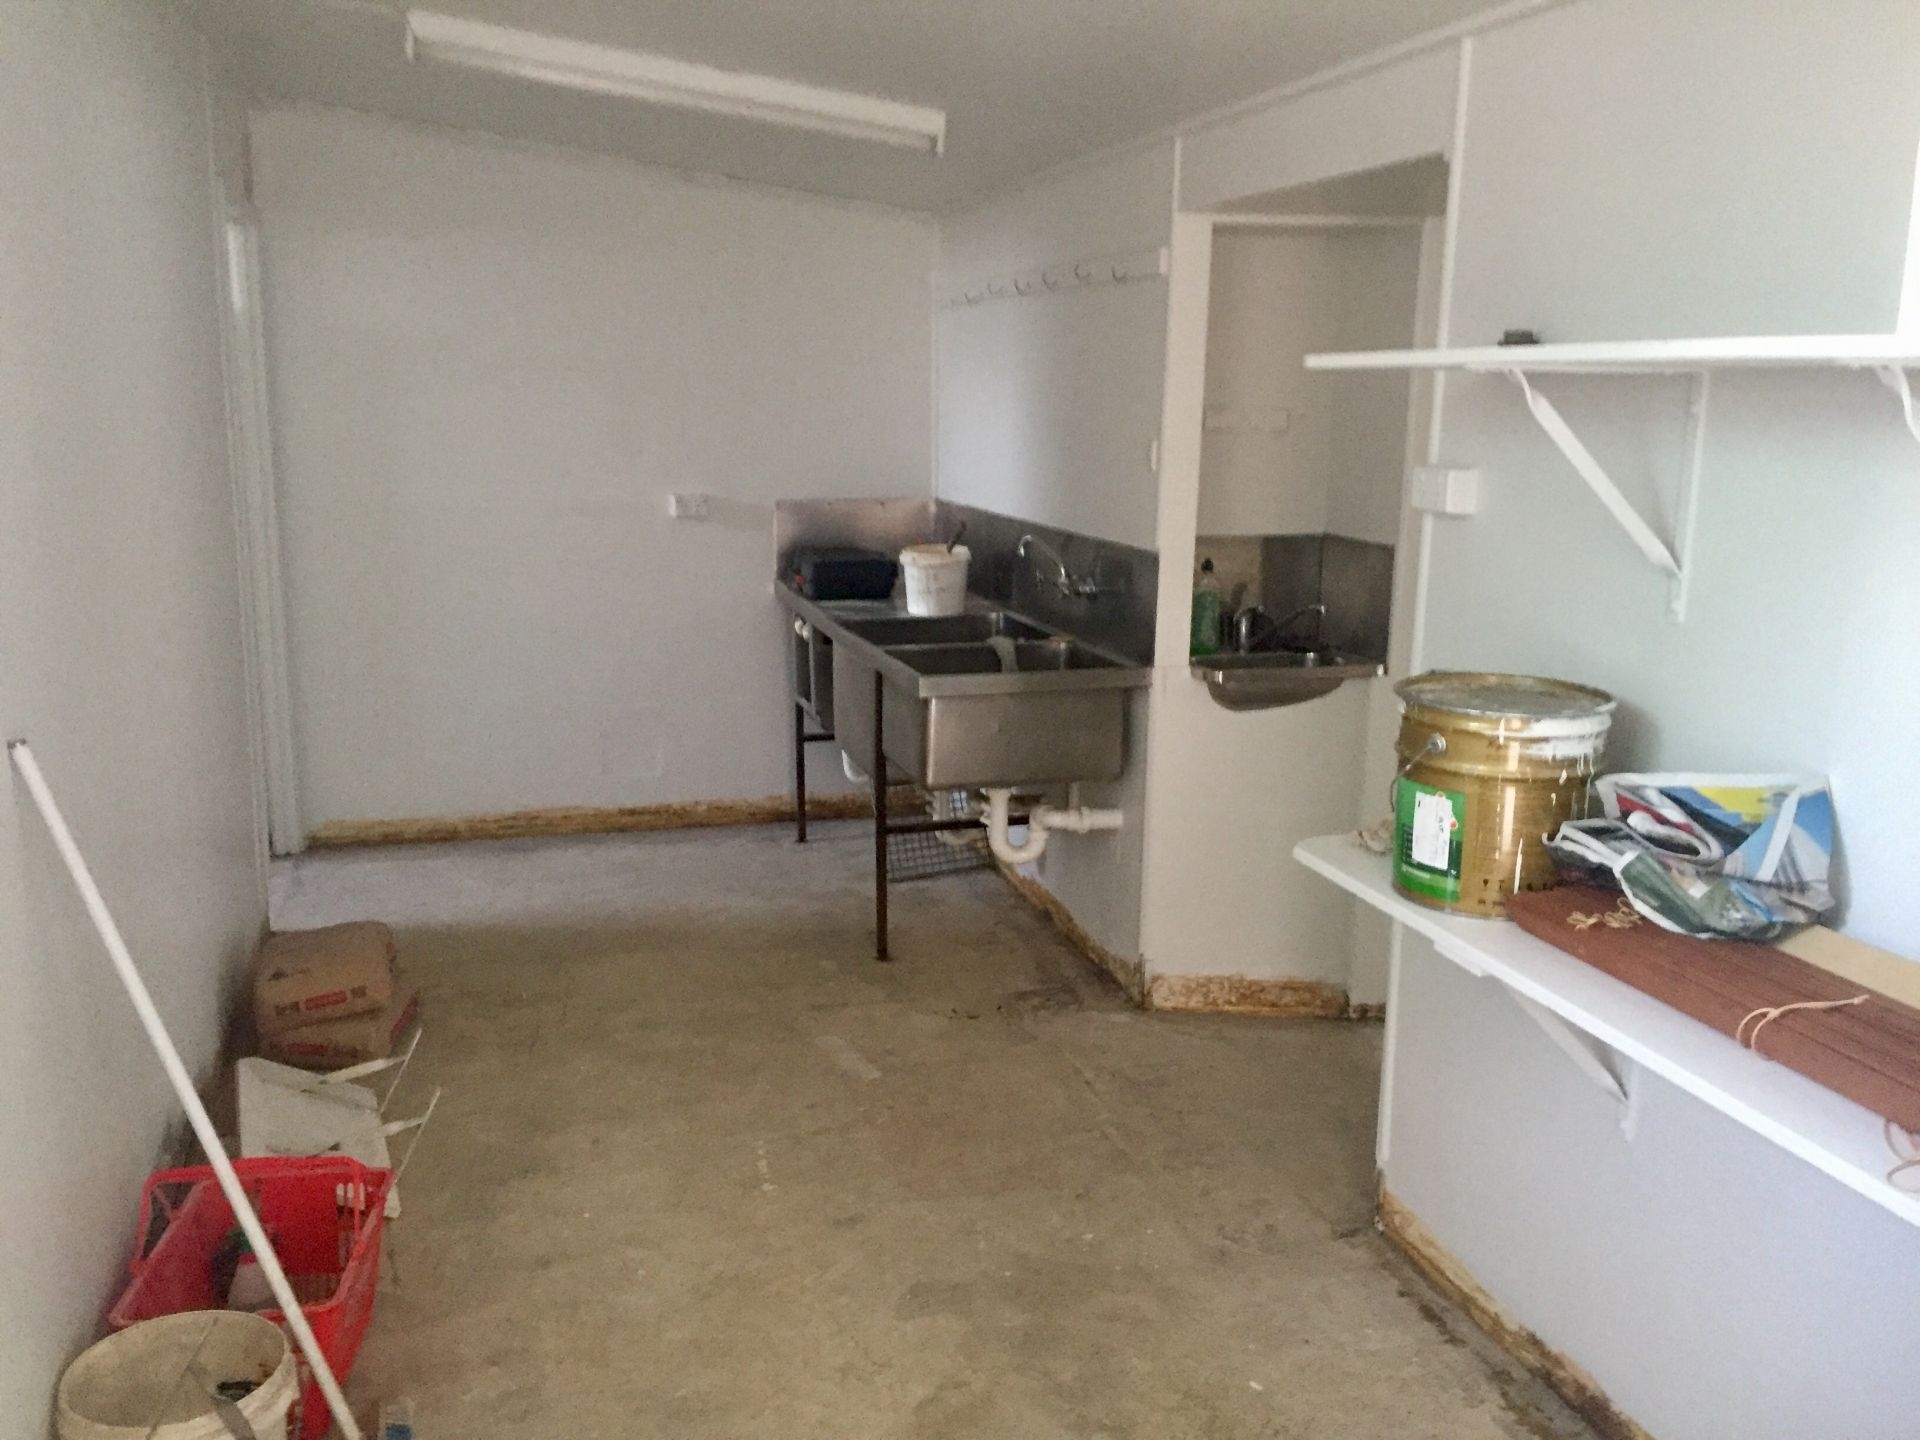 Shop + Residence + Off Street Parking - A Rare Opportunity